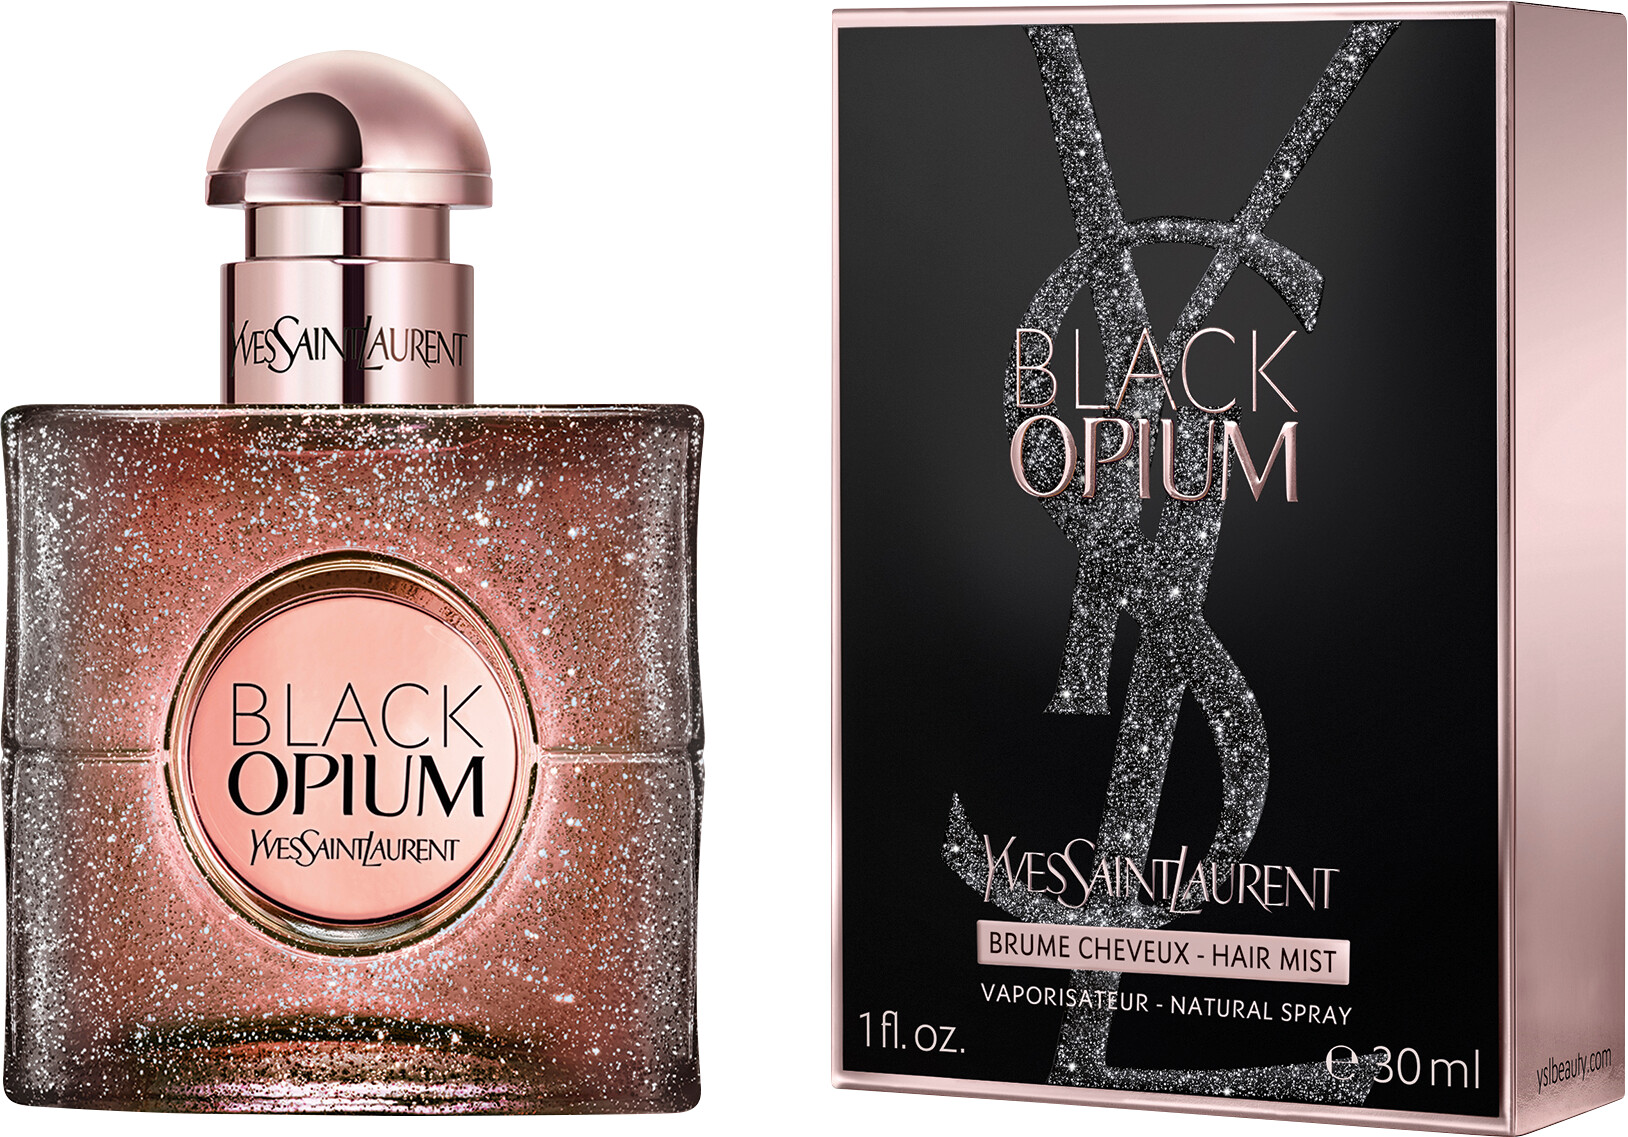 bd5e1ce9067 ... Yves Saint Laurent Black Opium Hair Mist 30ml